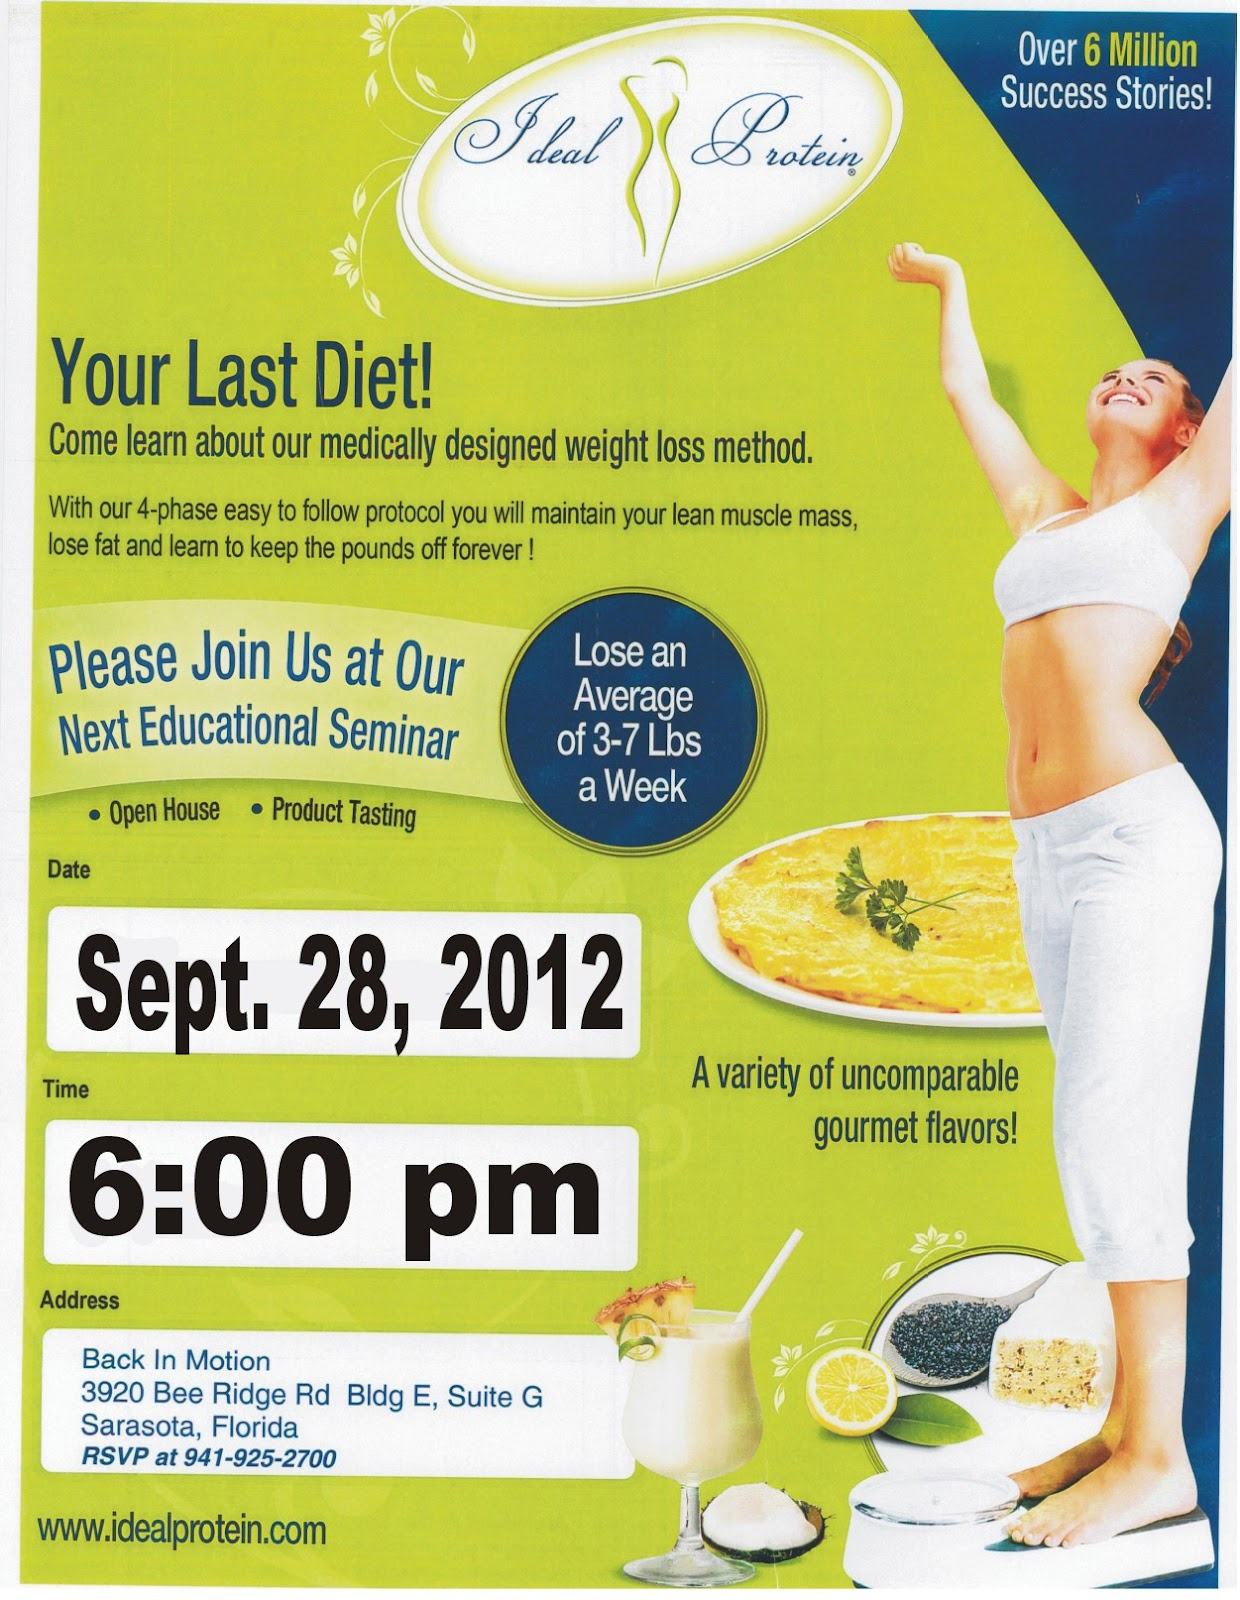 Tucson Medical Center Weight Loss Surgery